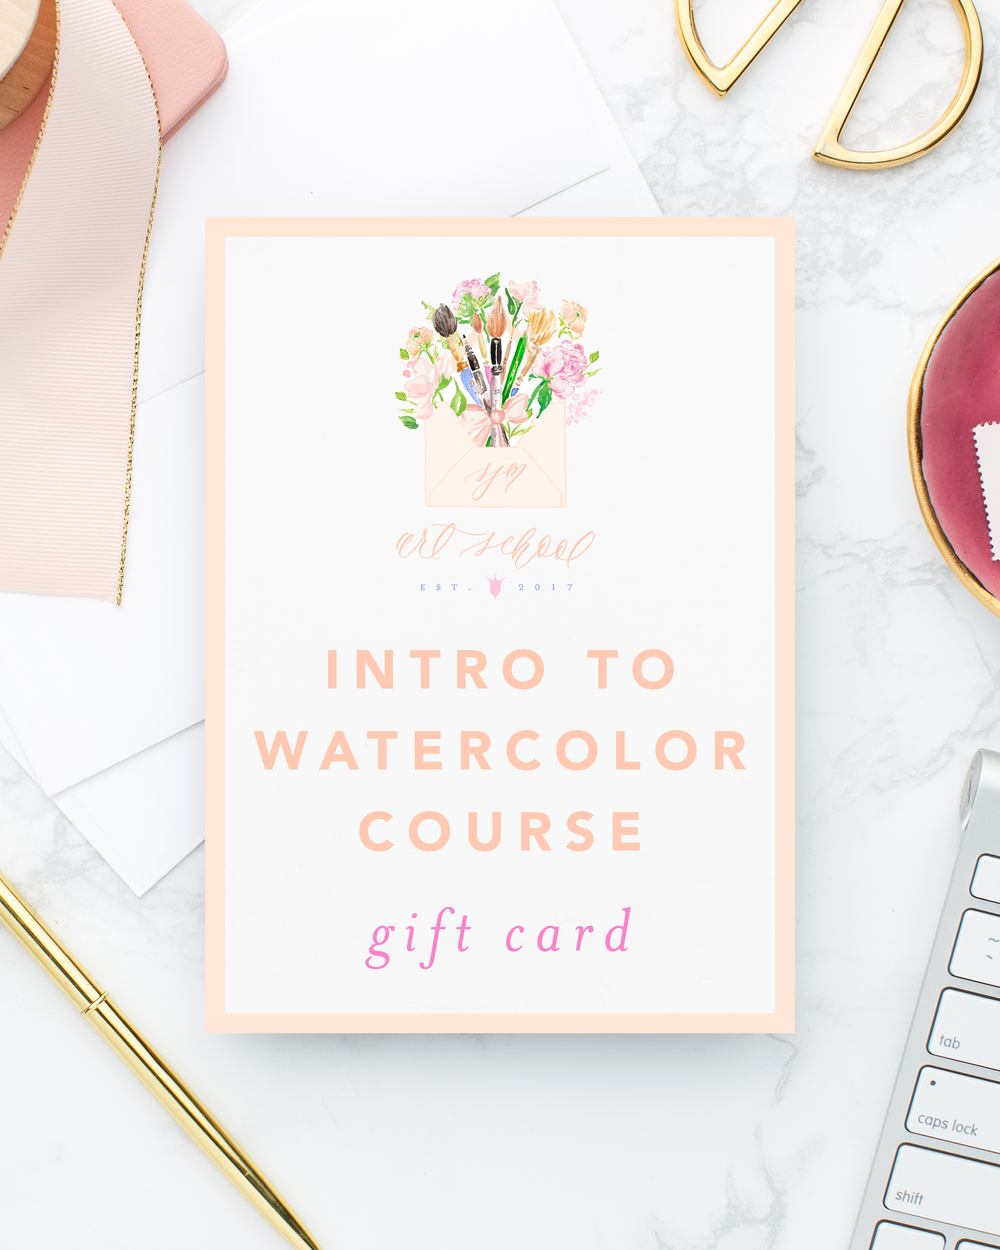 SJM Art School Intro to Watercolor Online Course Gift Card